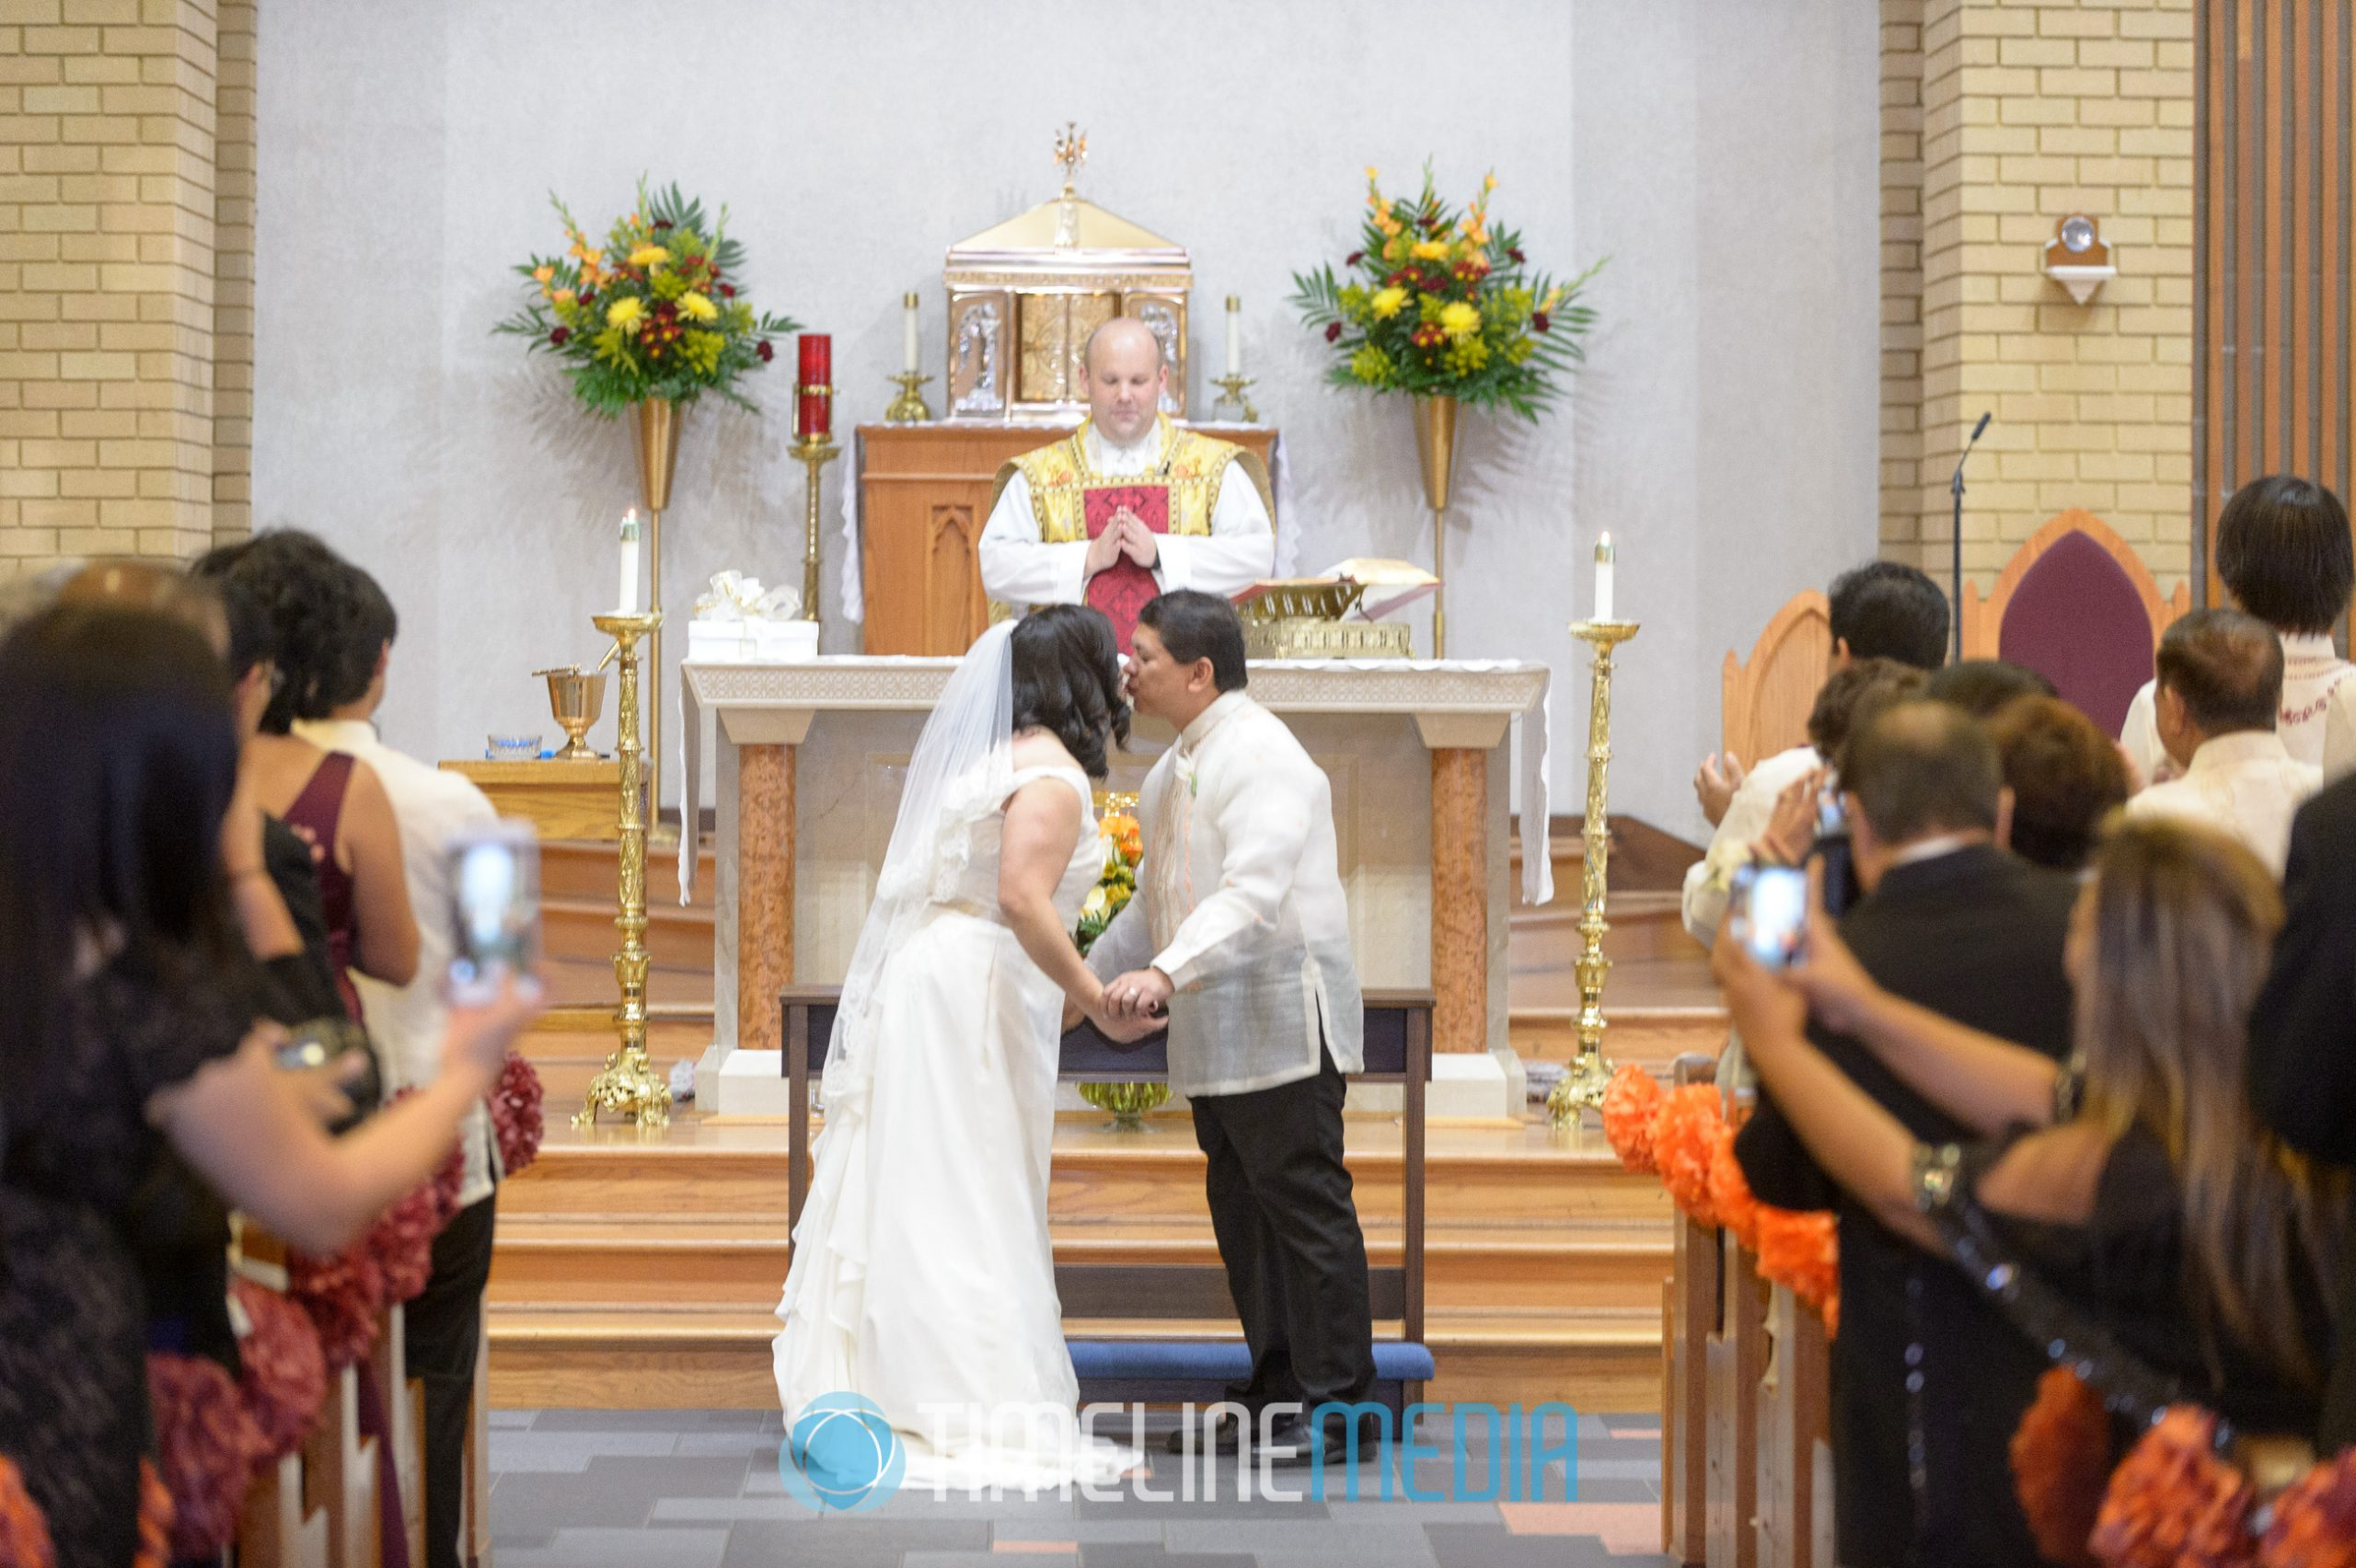 Jo and Claro's wedding at Our Lady of Angels Church in Woodbridge, VA ©TimeLine Media